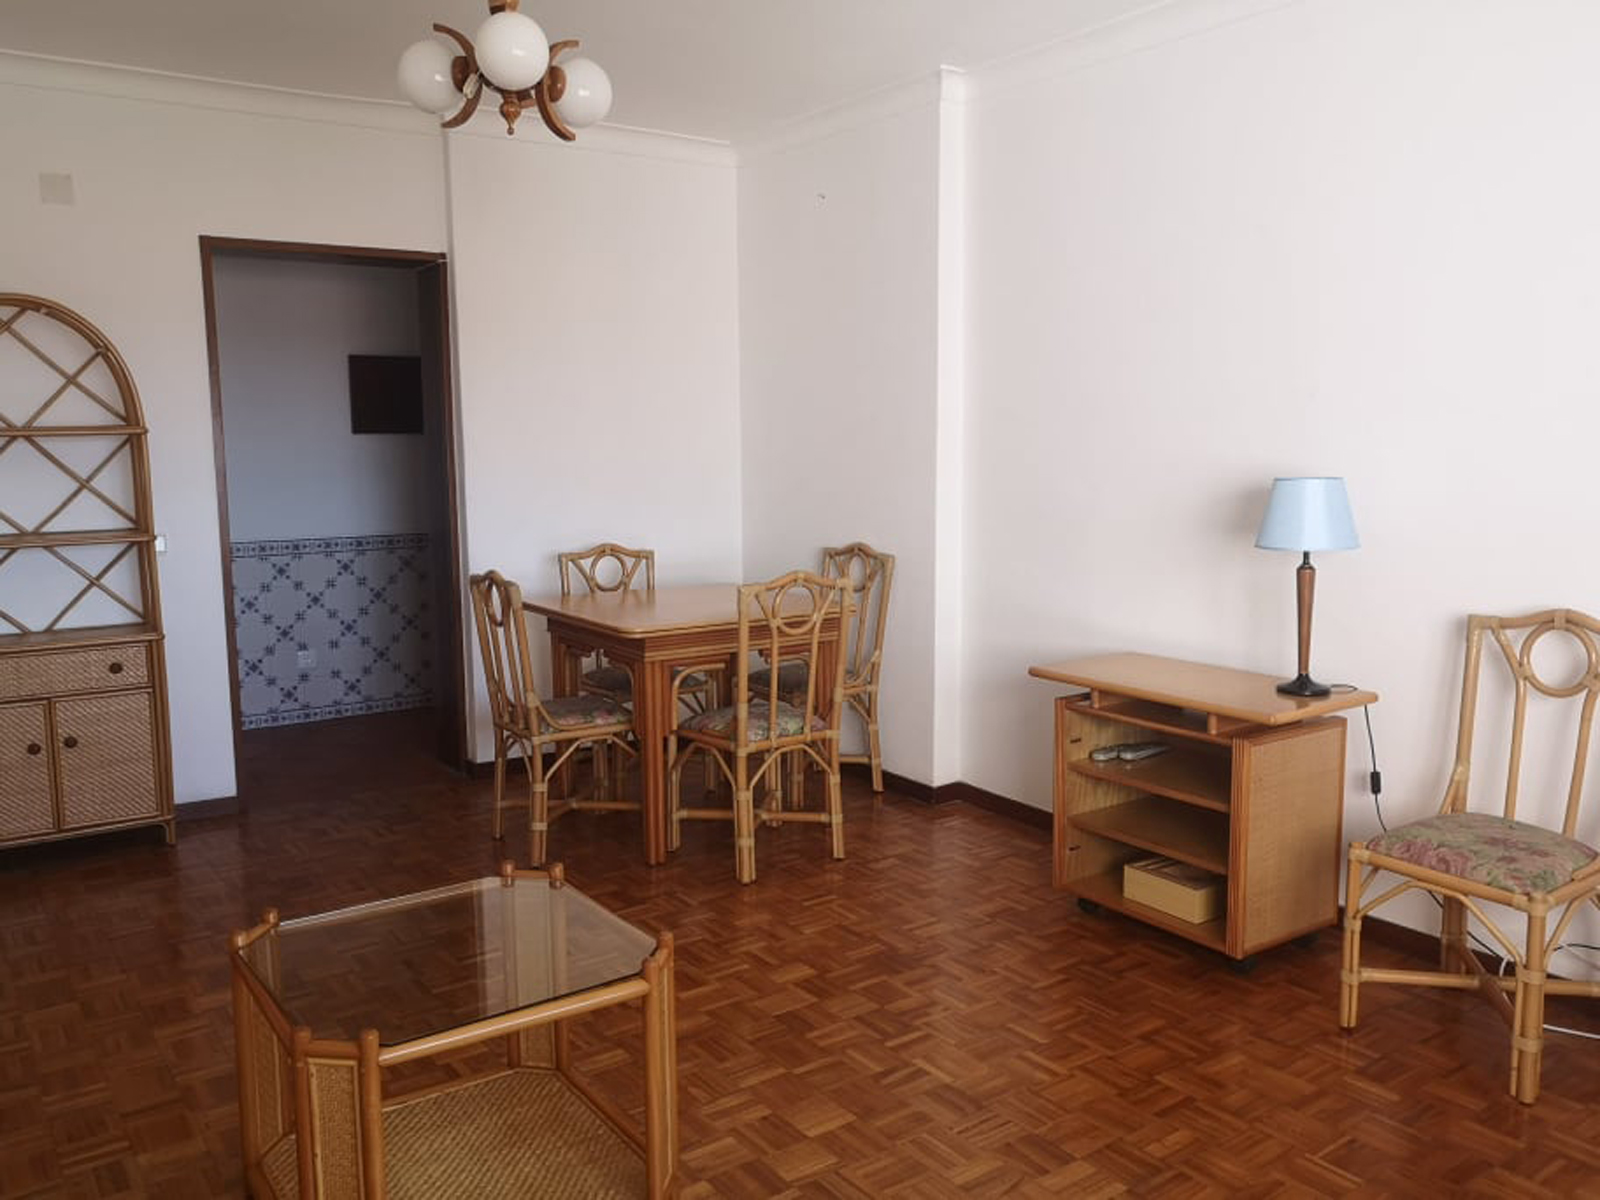 Used Apartment in Alcarial – 75 m²